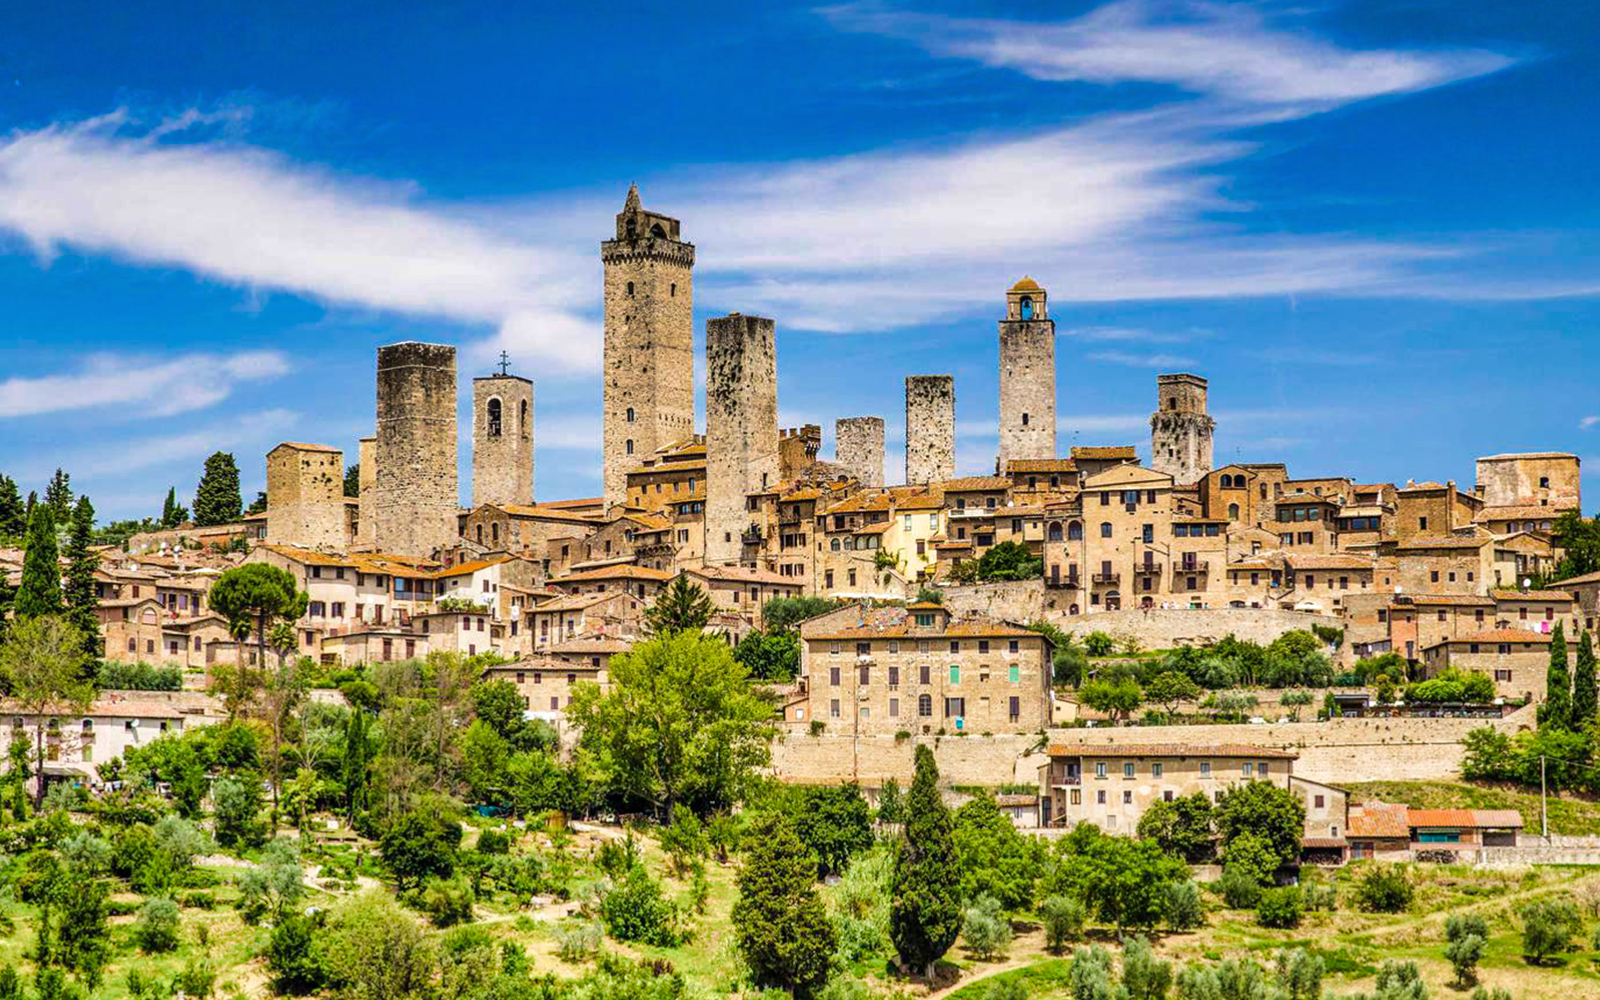 Italian Florence: 10 Best Florence Tours, Attractions & Activities In 2018